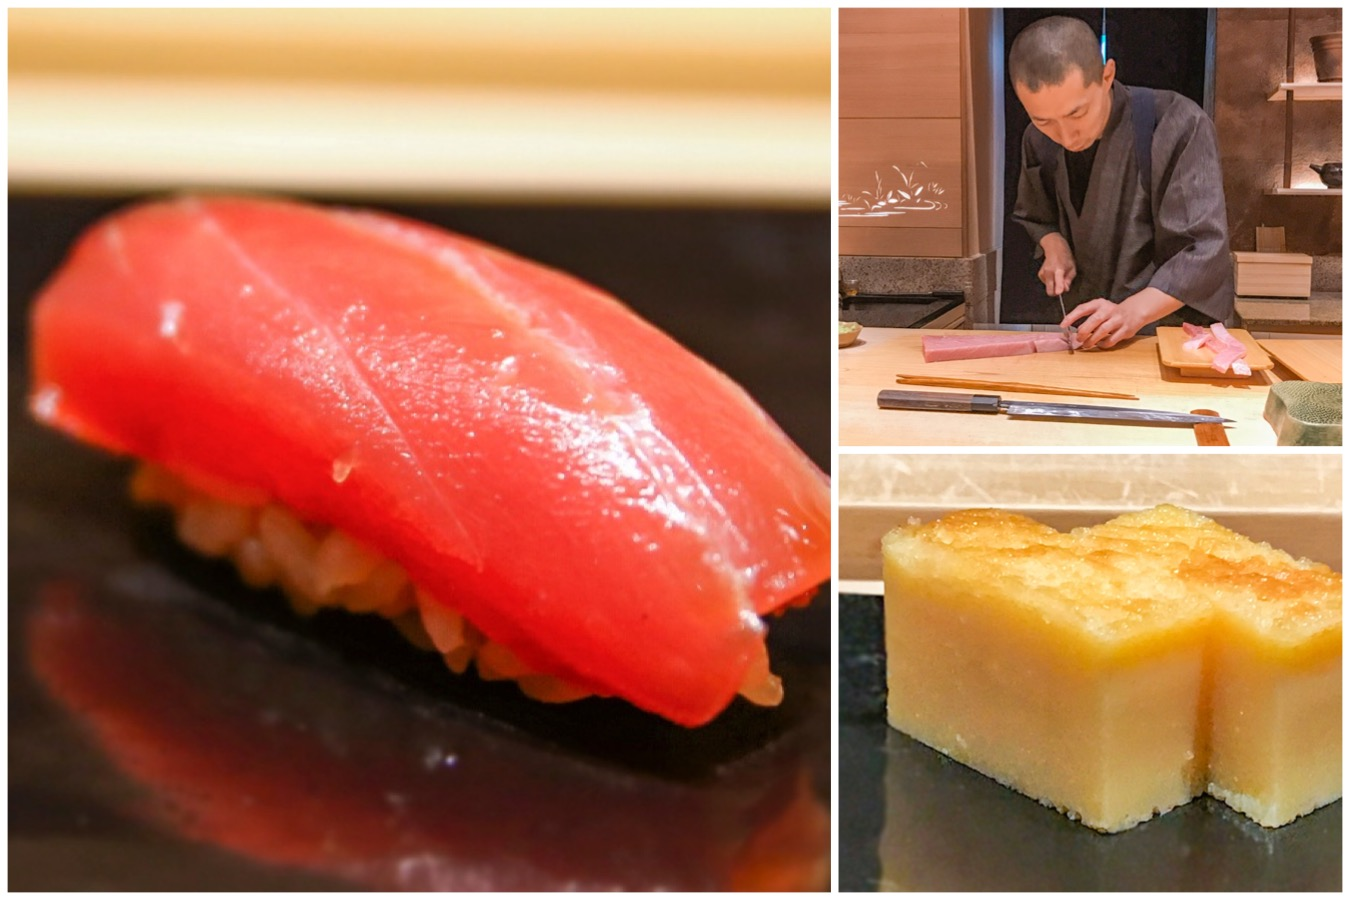 Ginza Sushi Ichi - Michelin Starred Sushi Restaurant At Orchard, Fish Flown 5 Times A Week From Tsukiji